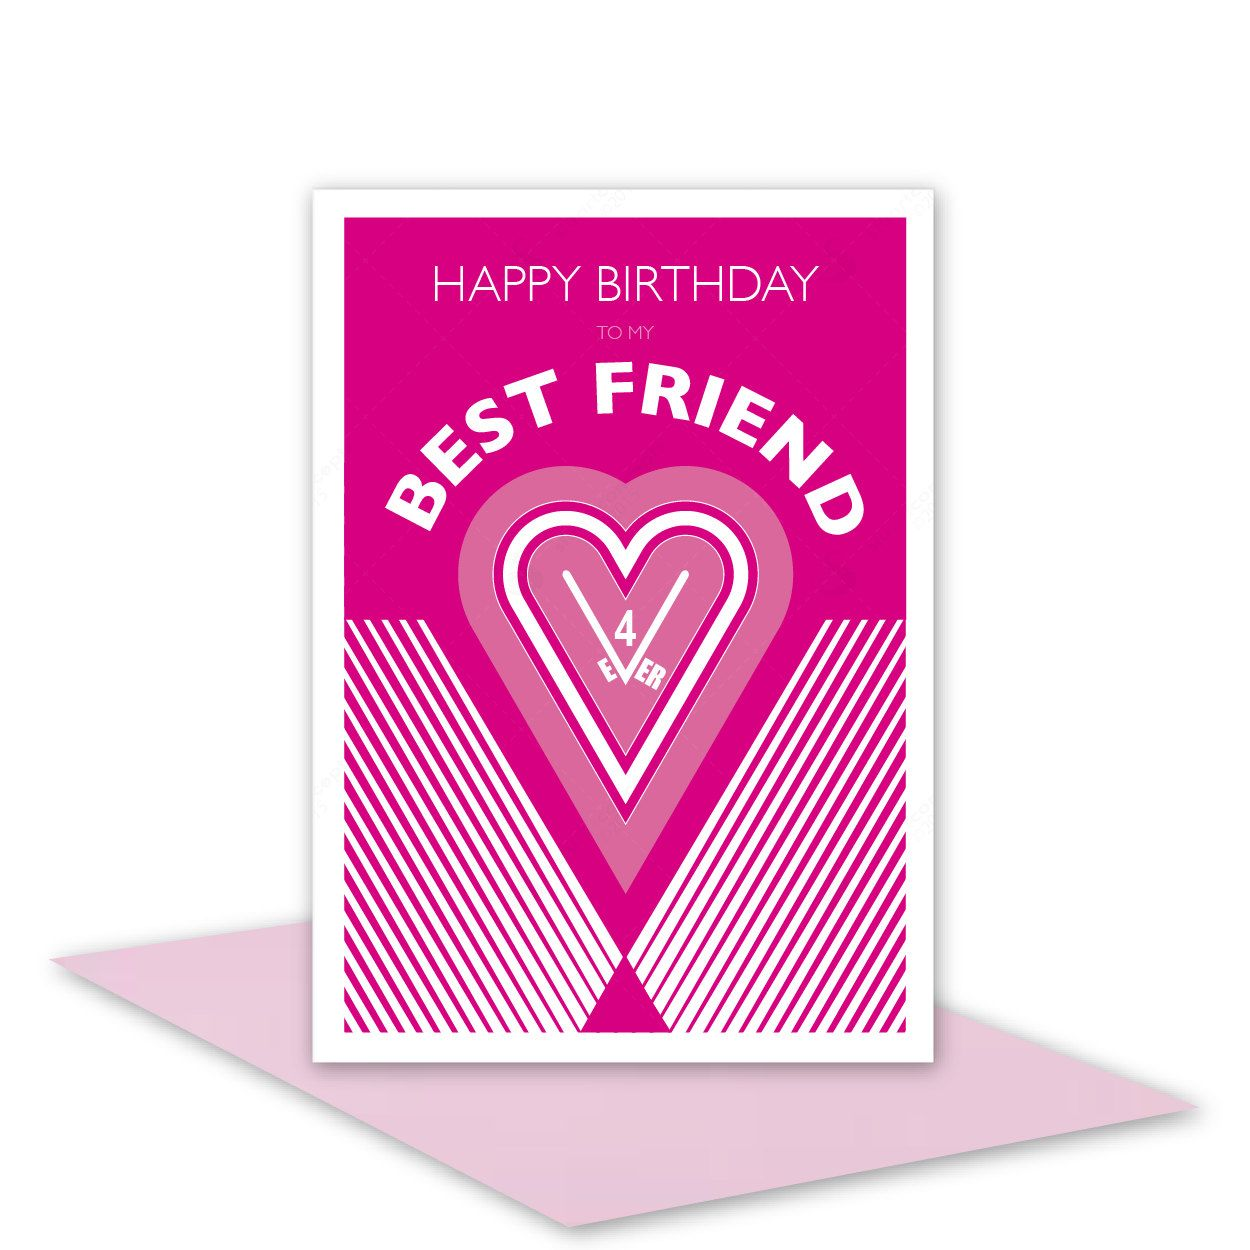 Best Friend Happy Birthday Card For Girl Woman Female Ever Personalised Inside Message Option Heart Typography Hot Pink